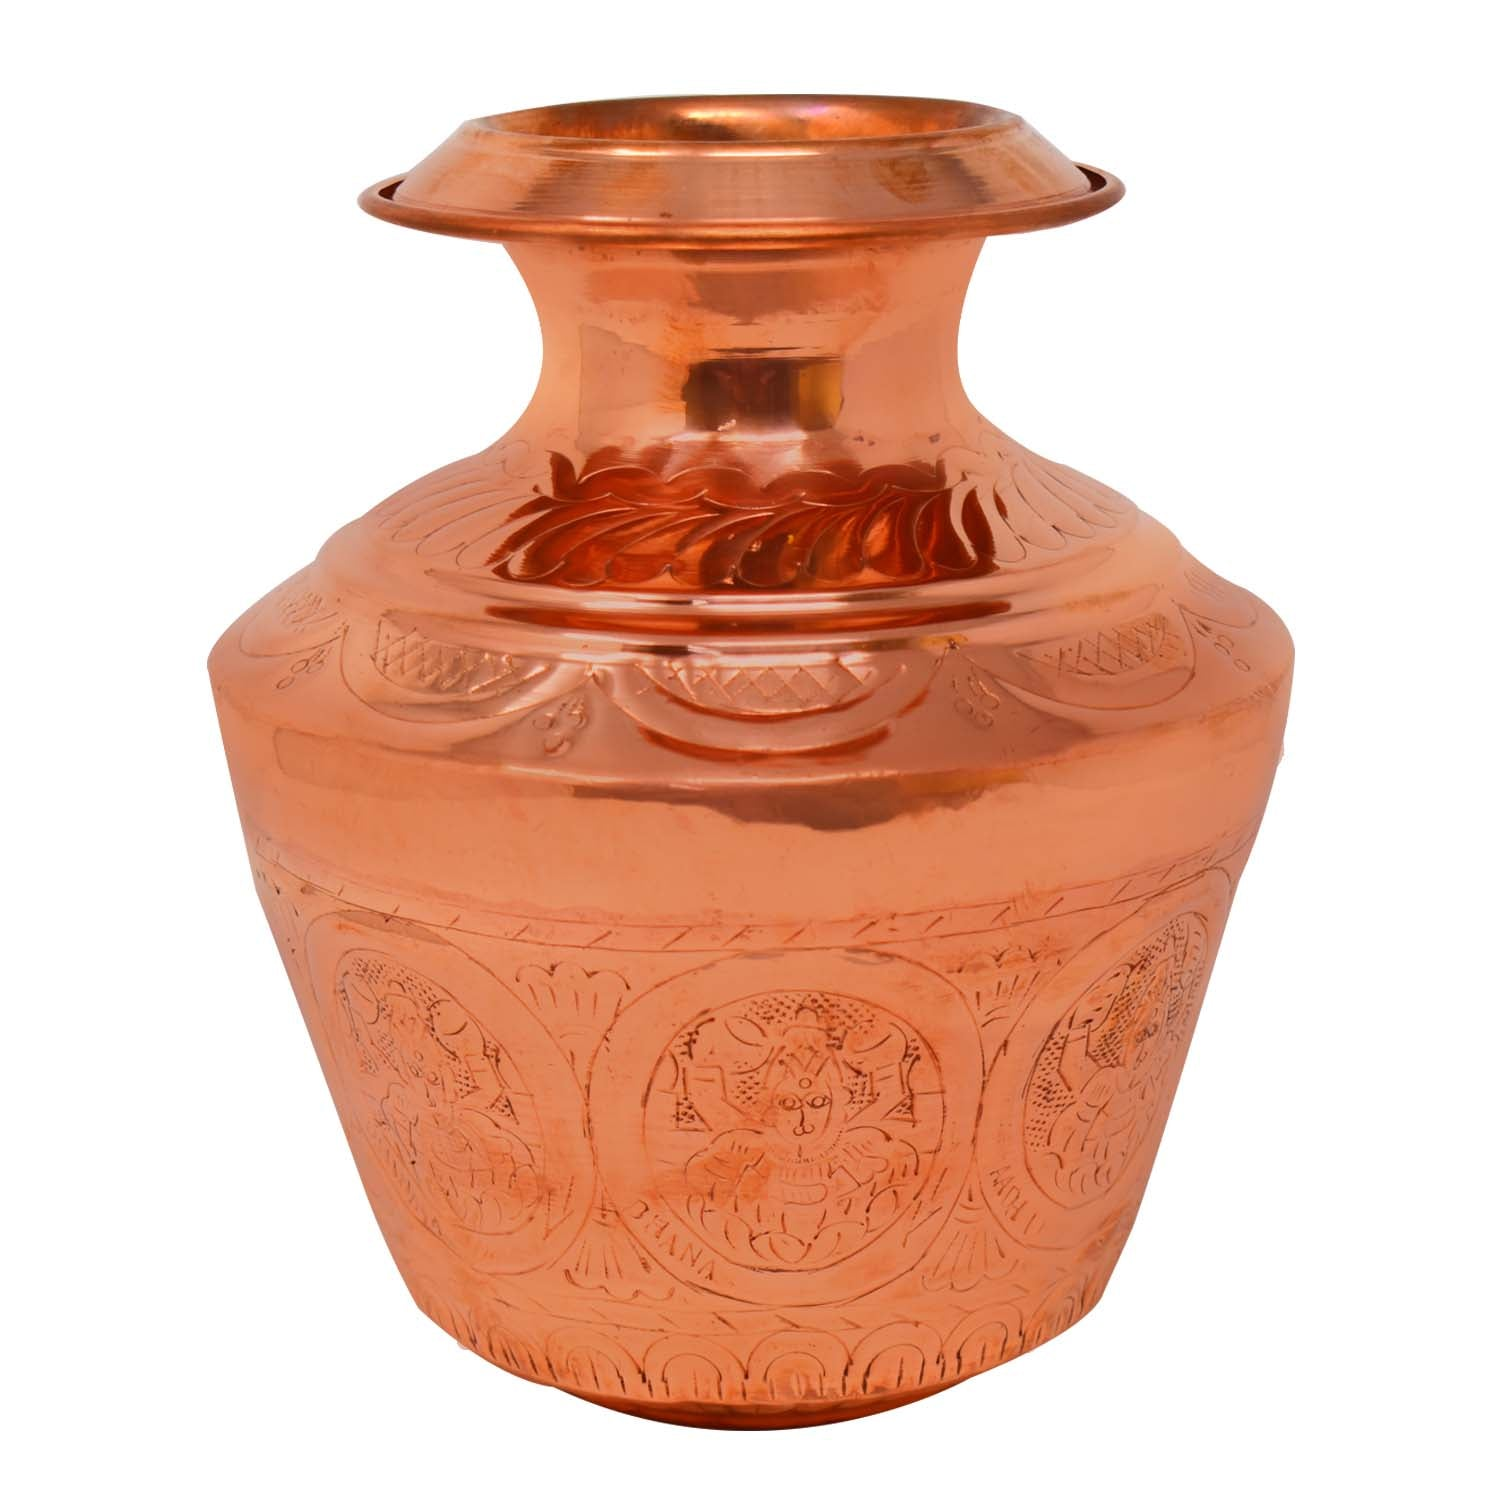 Copper Ashtalakshmi Water Pot